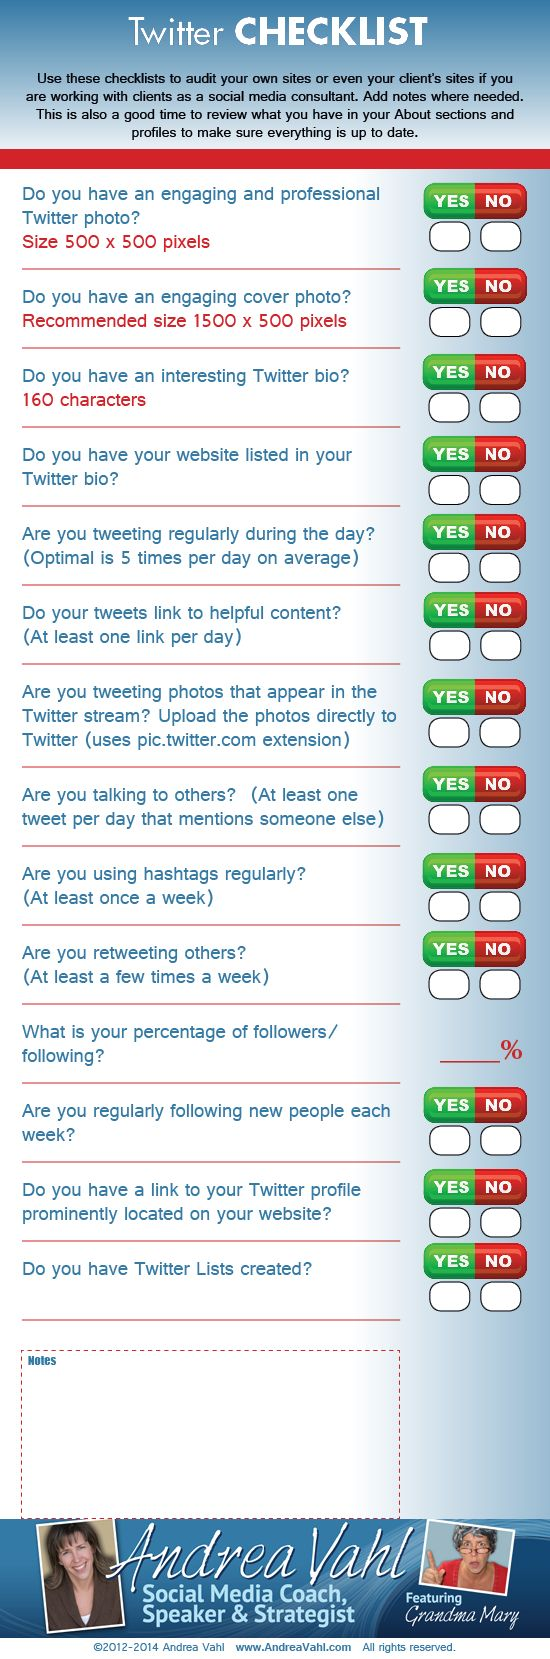 Are you getting everything right on #Twitter? Use this checklist to audit your Twitter account. #infographic #smbiztips http://www.andreavahl.com/twitter/twitter-checklist-infographic.php Twitter Checklist [Infographic]